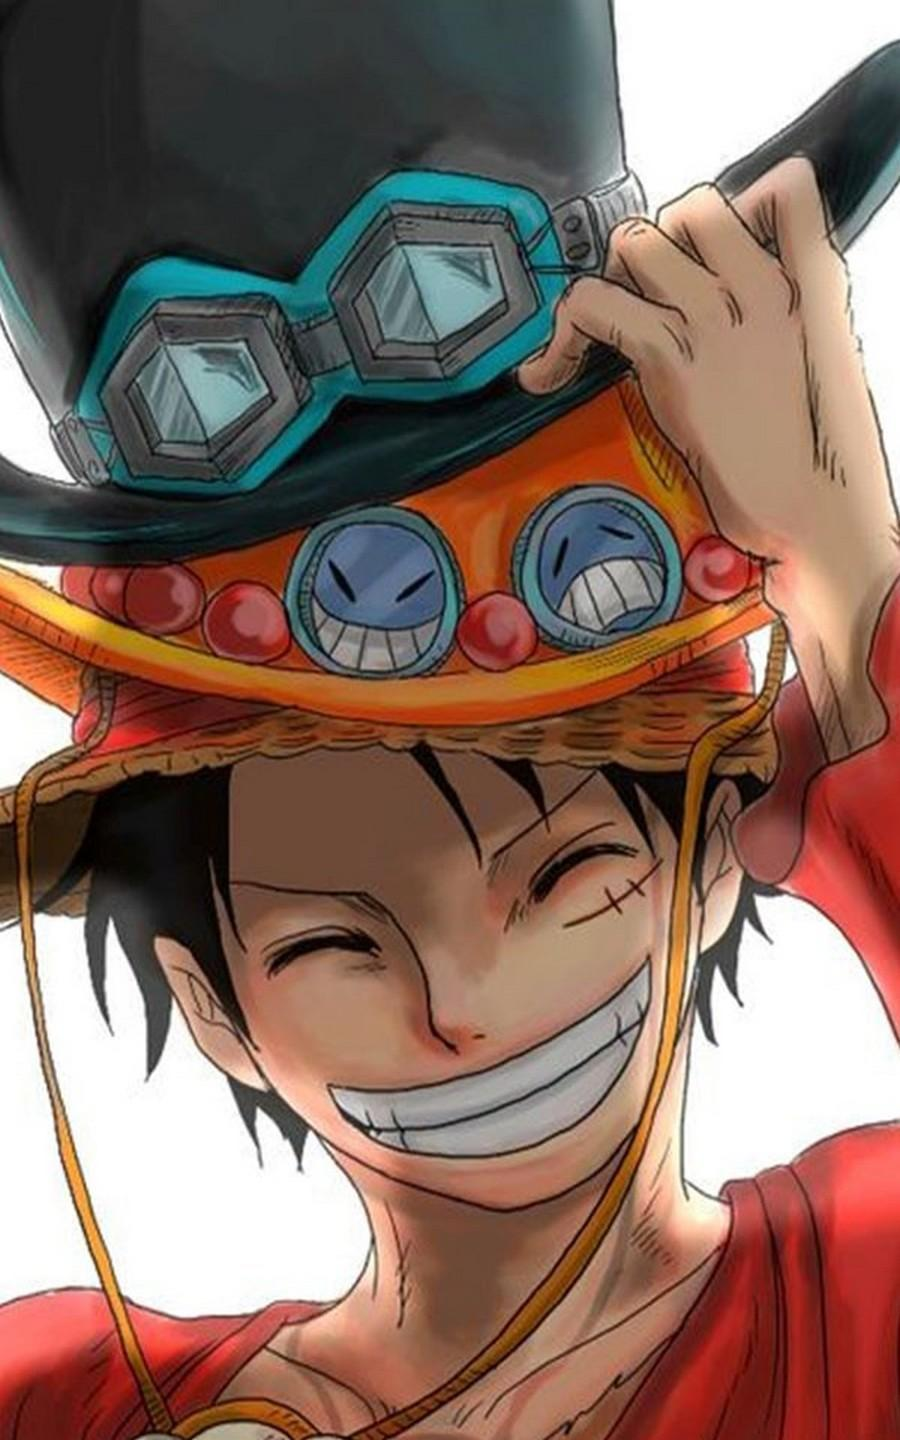 Monkey D Luffy Wallpapers FansArt for Android